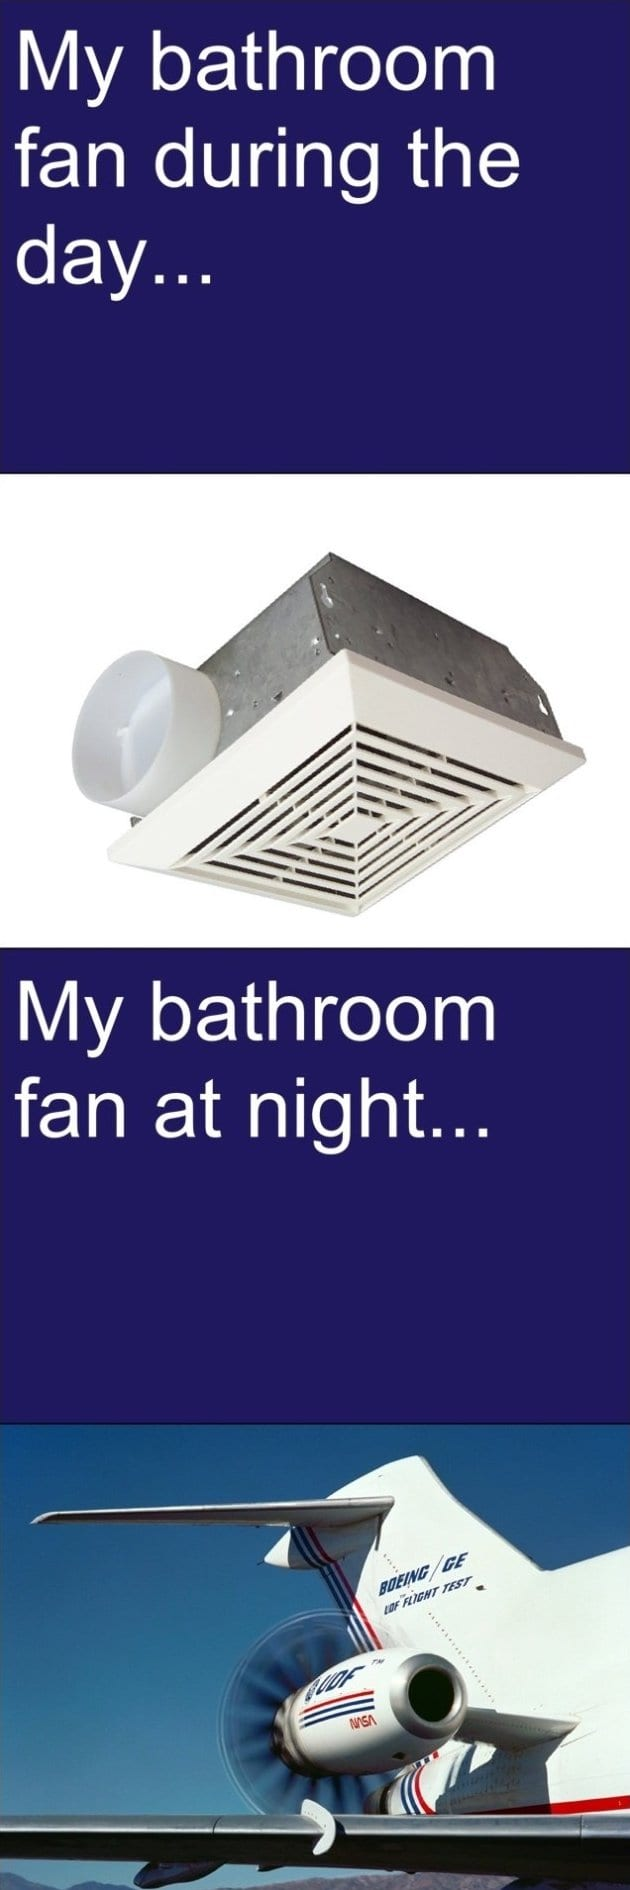 funny-pictures-2014-bathroom-fan